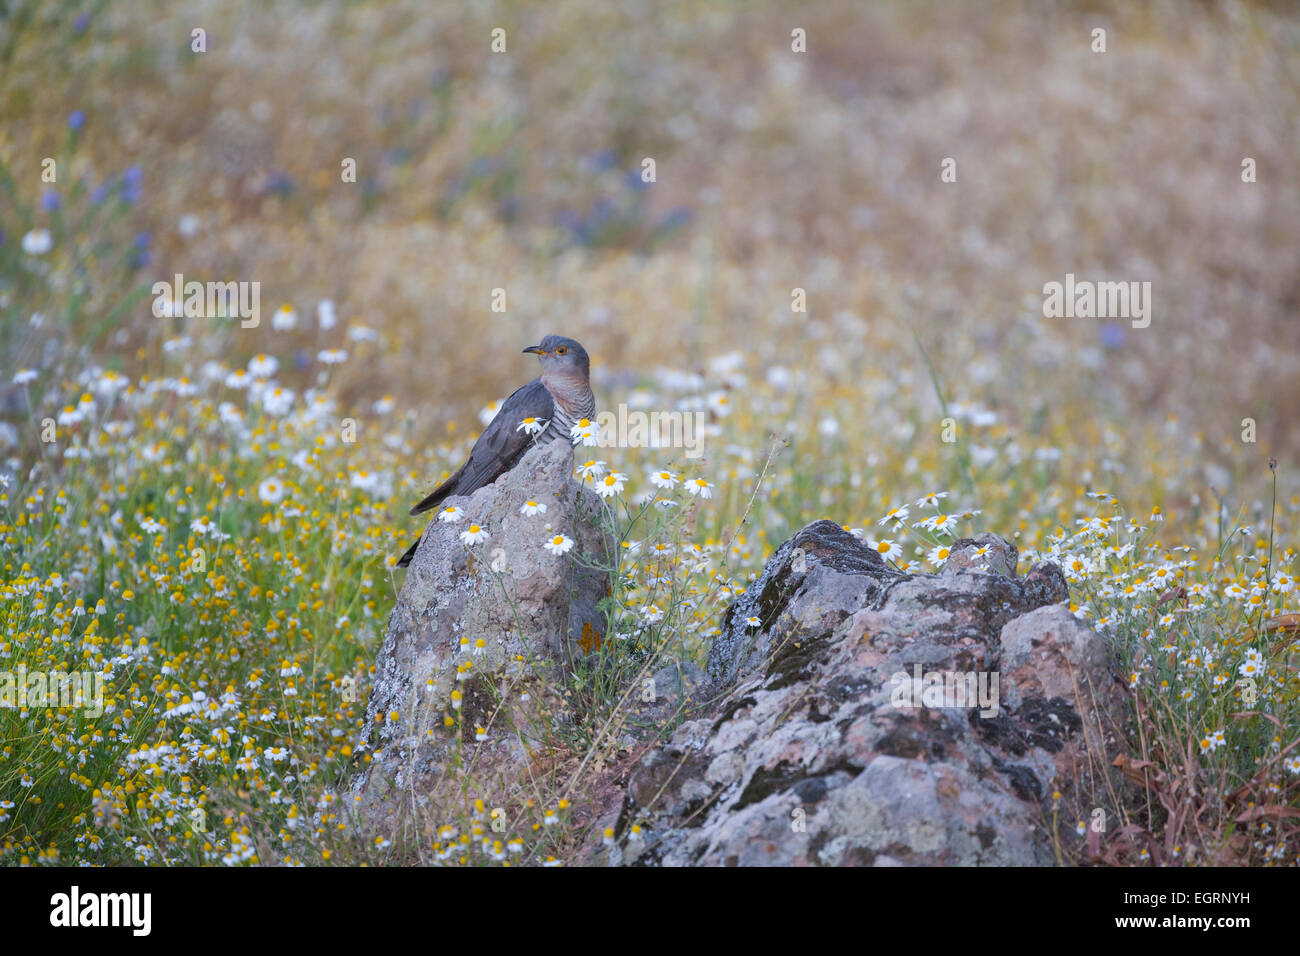 Common Cuckoo Cuculus canorus, male perched on rocks in meadow, Napi Valley, Lesvos in April. - Stock Image